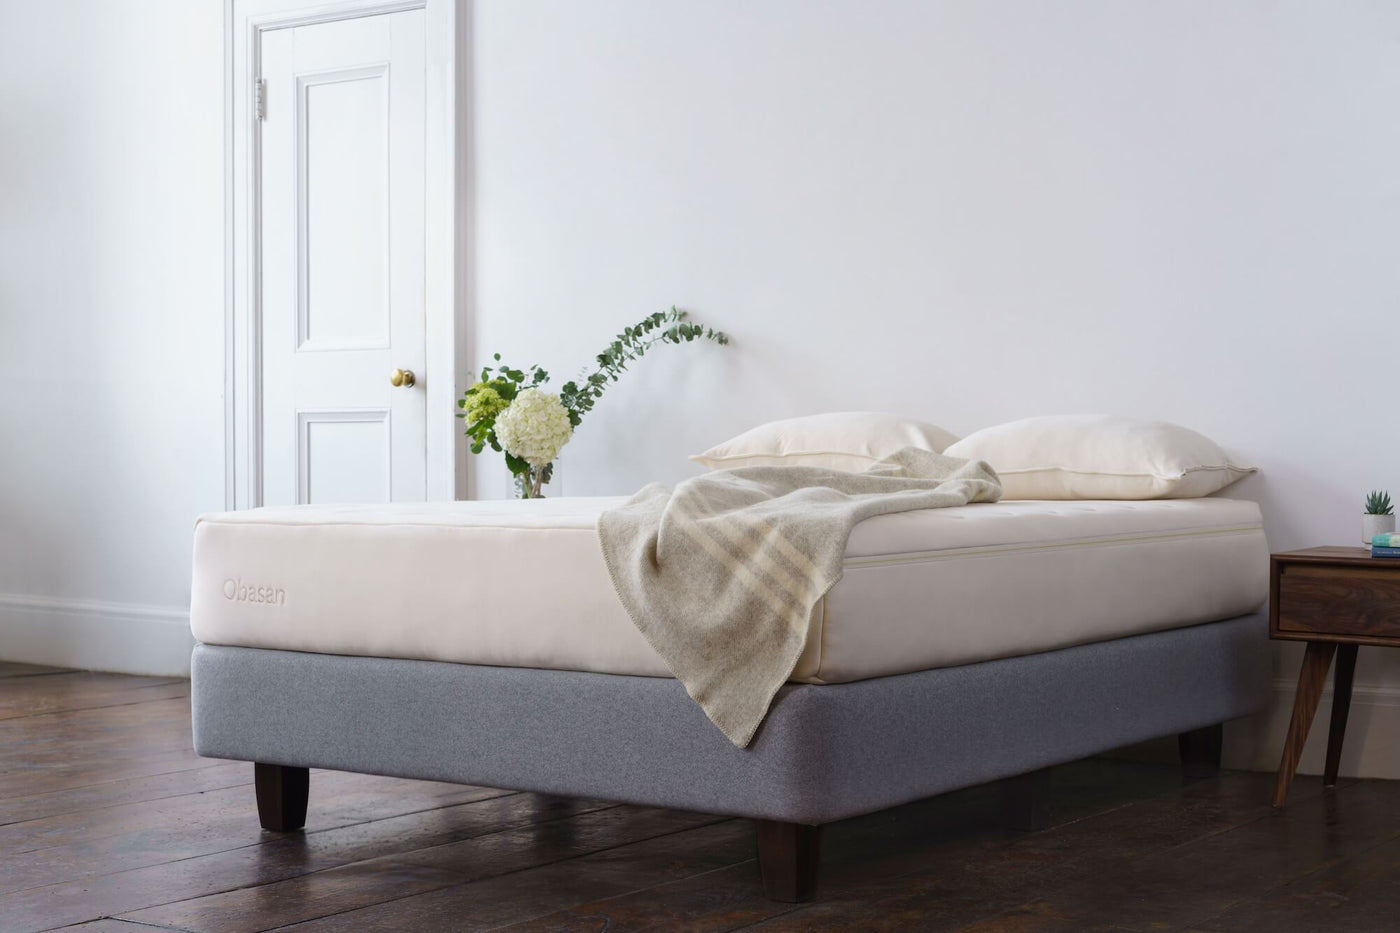 Obasan Mattresses. Made in Canada. Organic mattresses made with the highest quality organic materials.